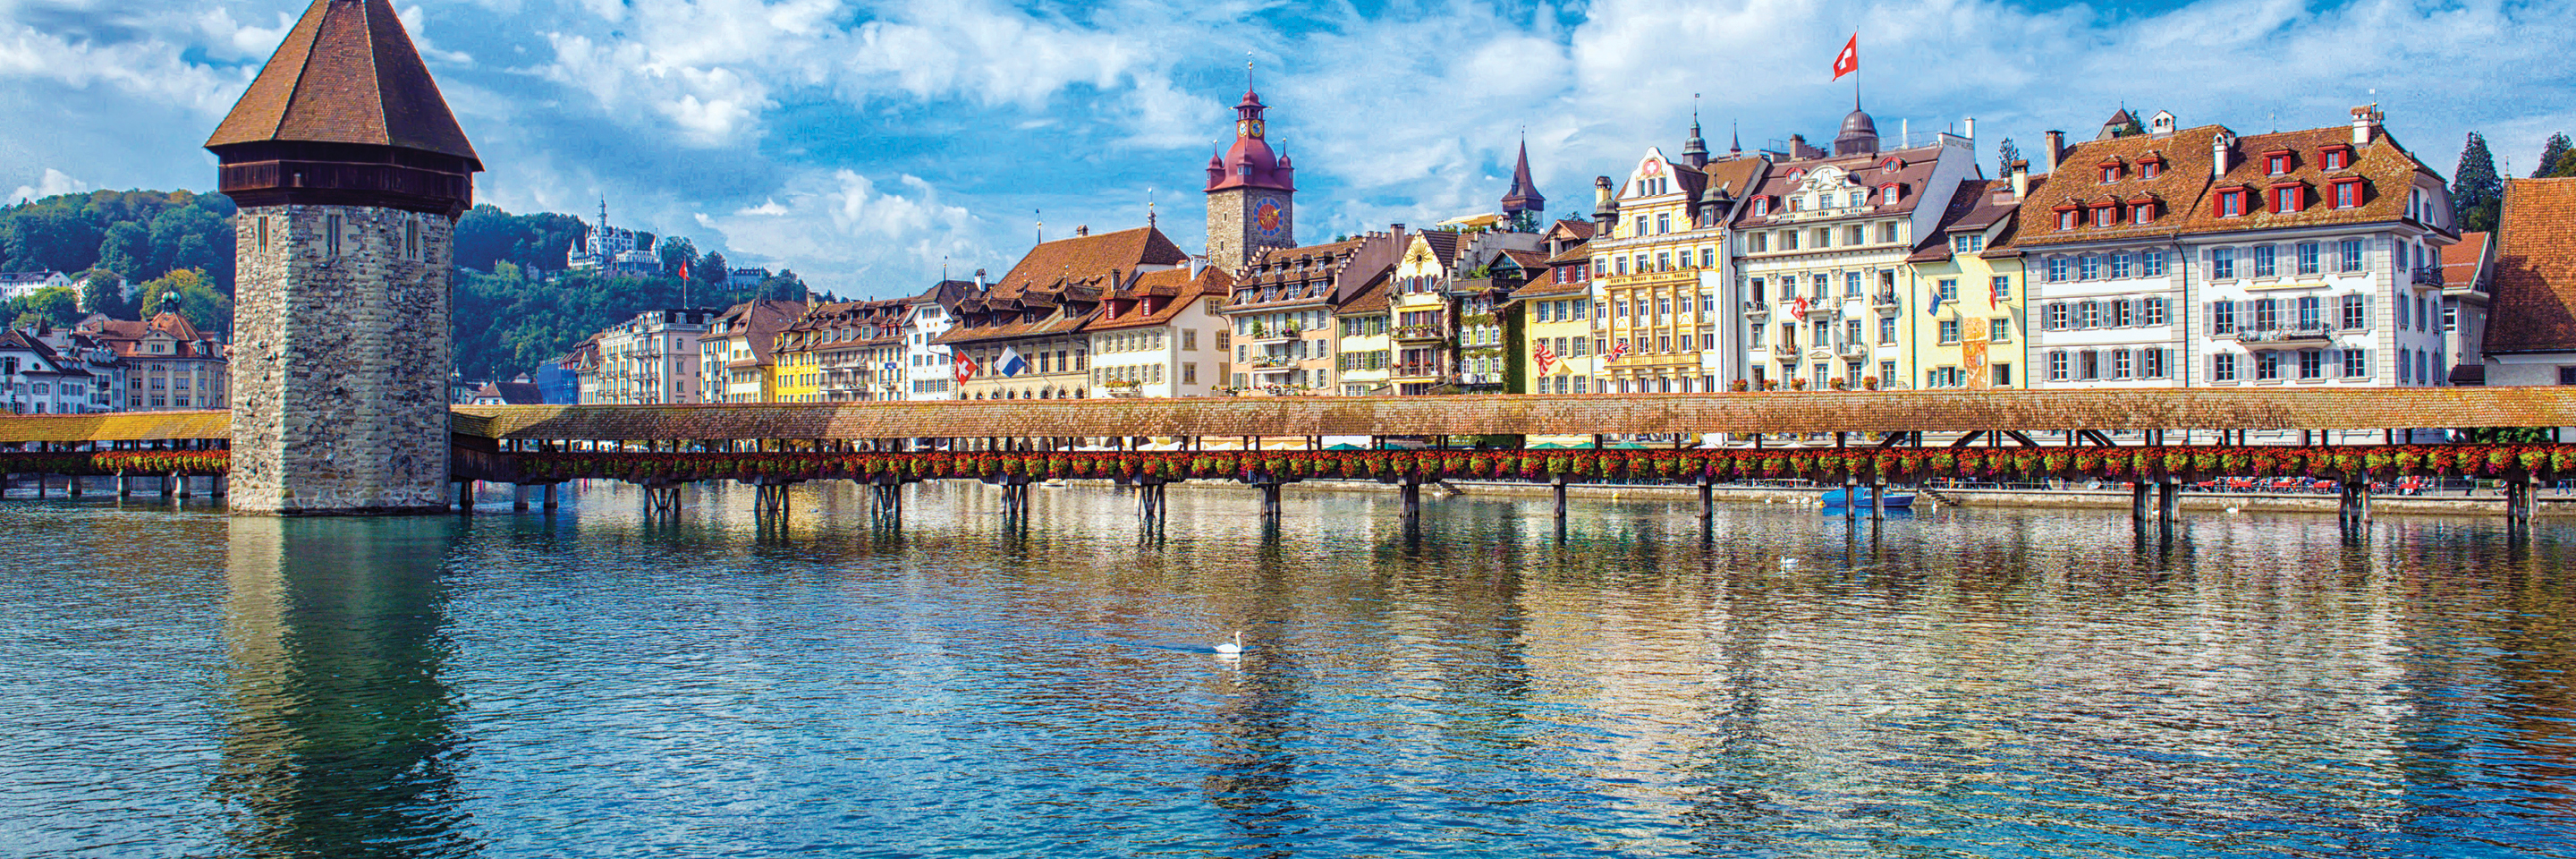 Active & Discovery on the Rhine with 2 Nights in Lucerne